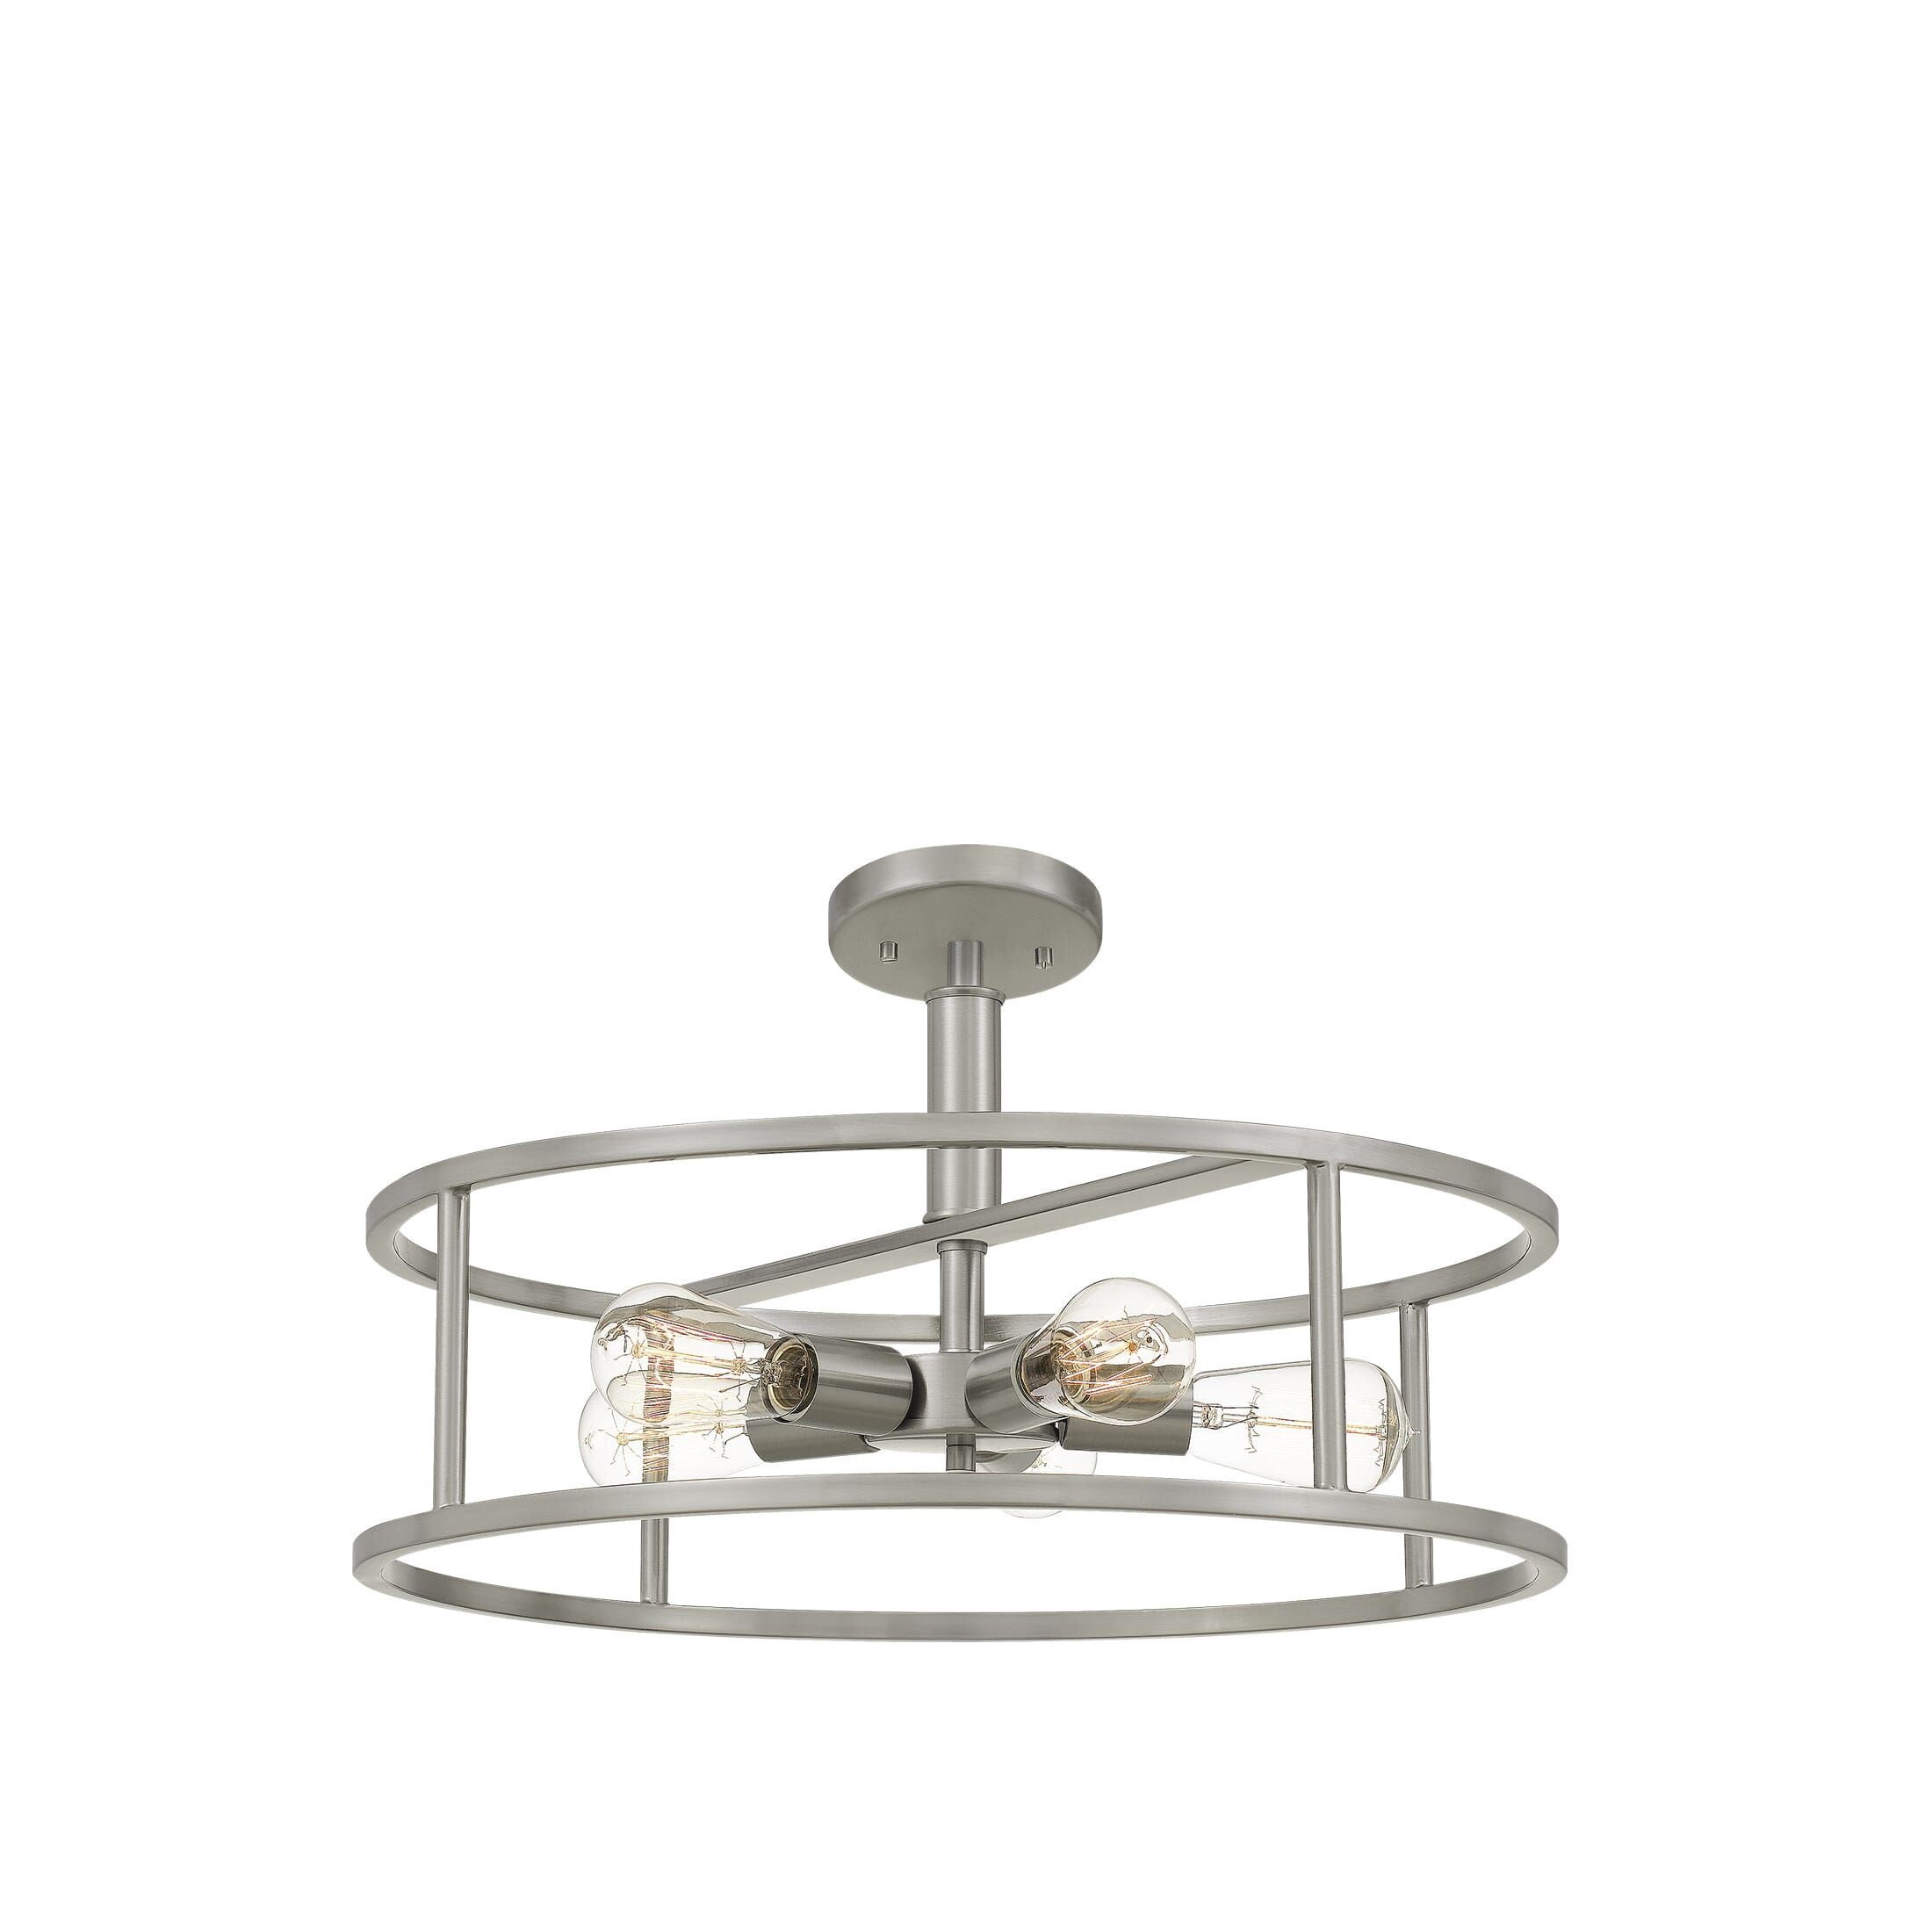 "Quoizel New Harbor 5Light 20"" Ceiling Light in Brushed"